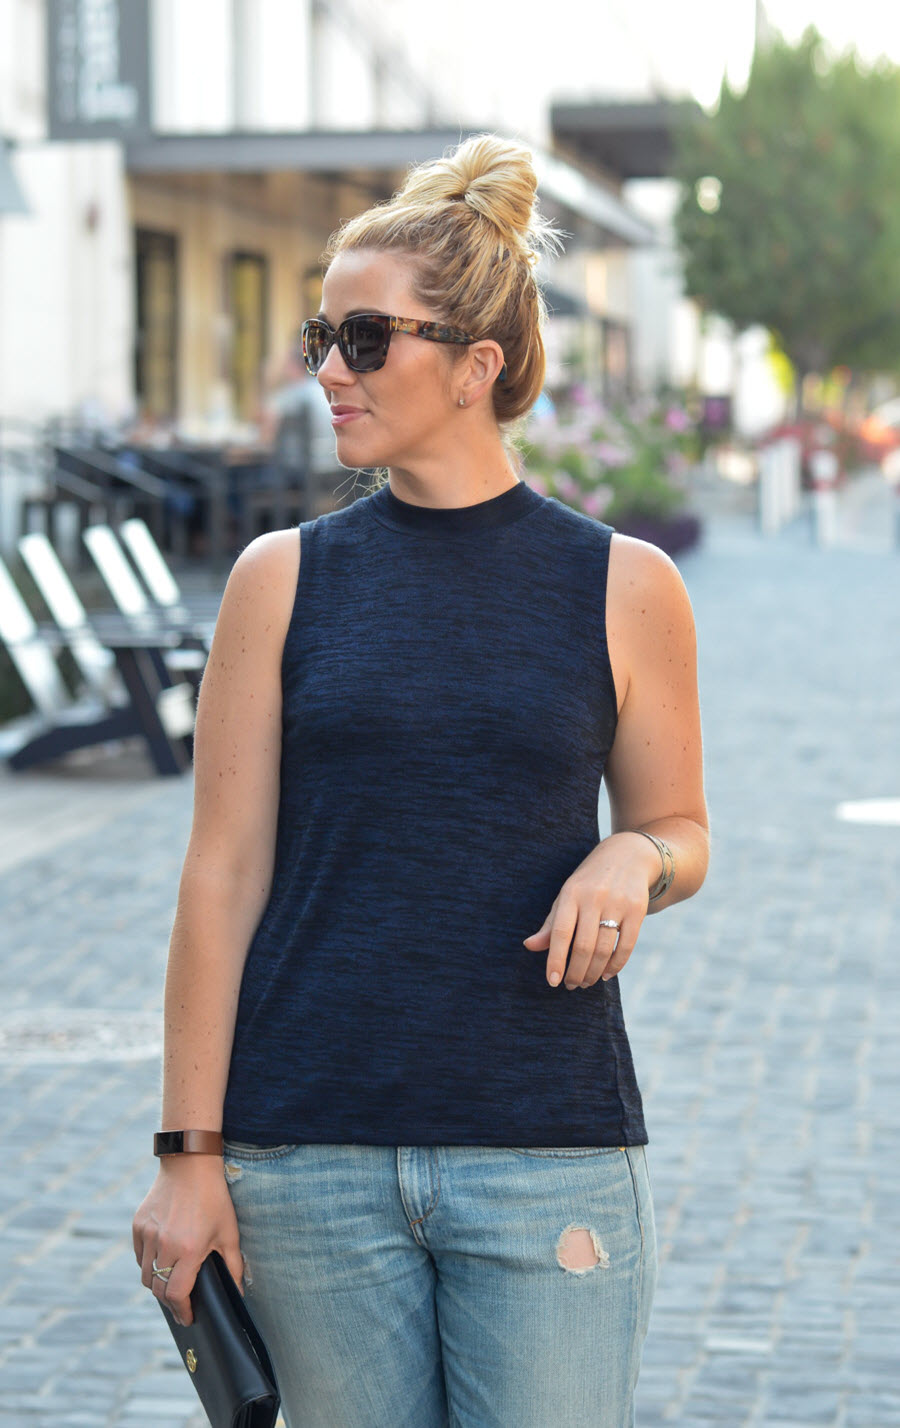 Boyfriend Jeans + Sleeveless Turtleneck Outfit Ideas for Summer